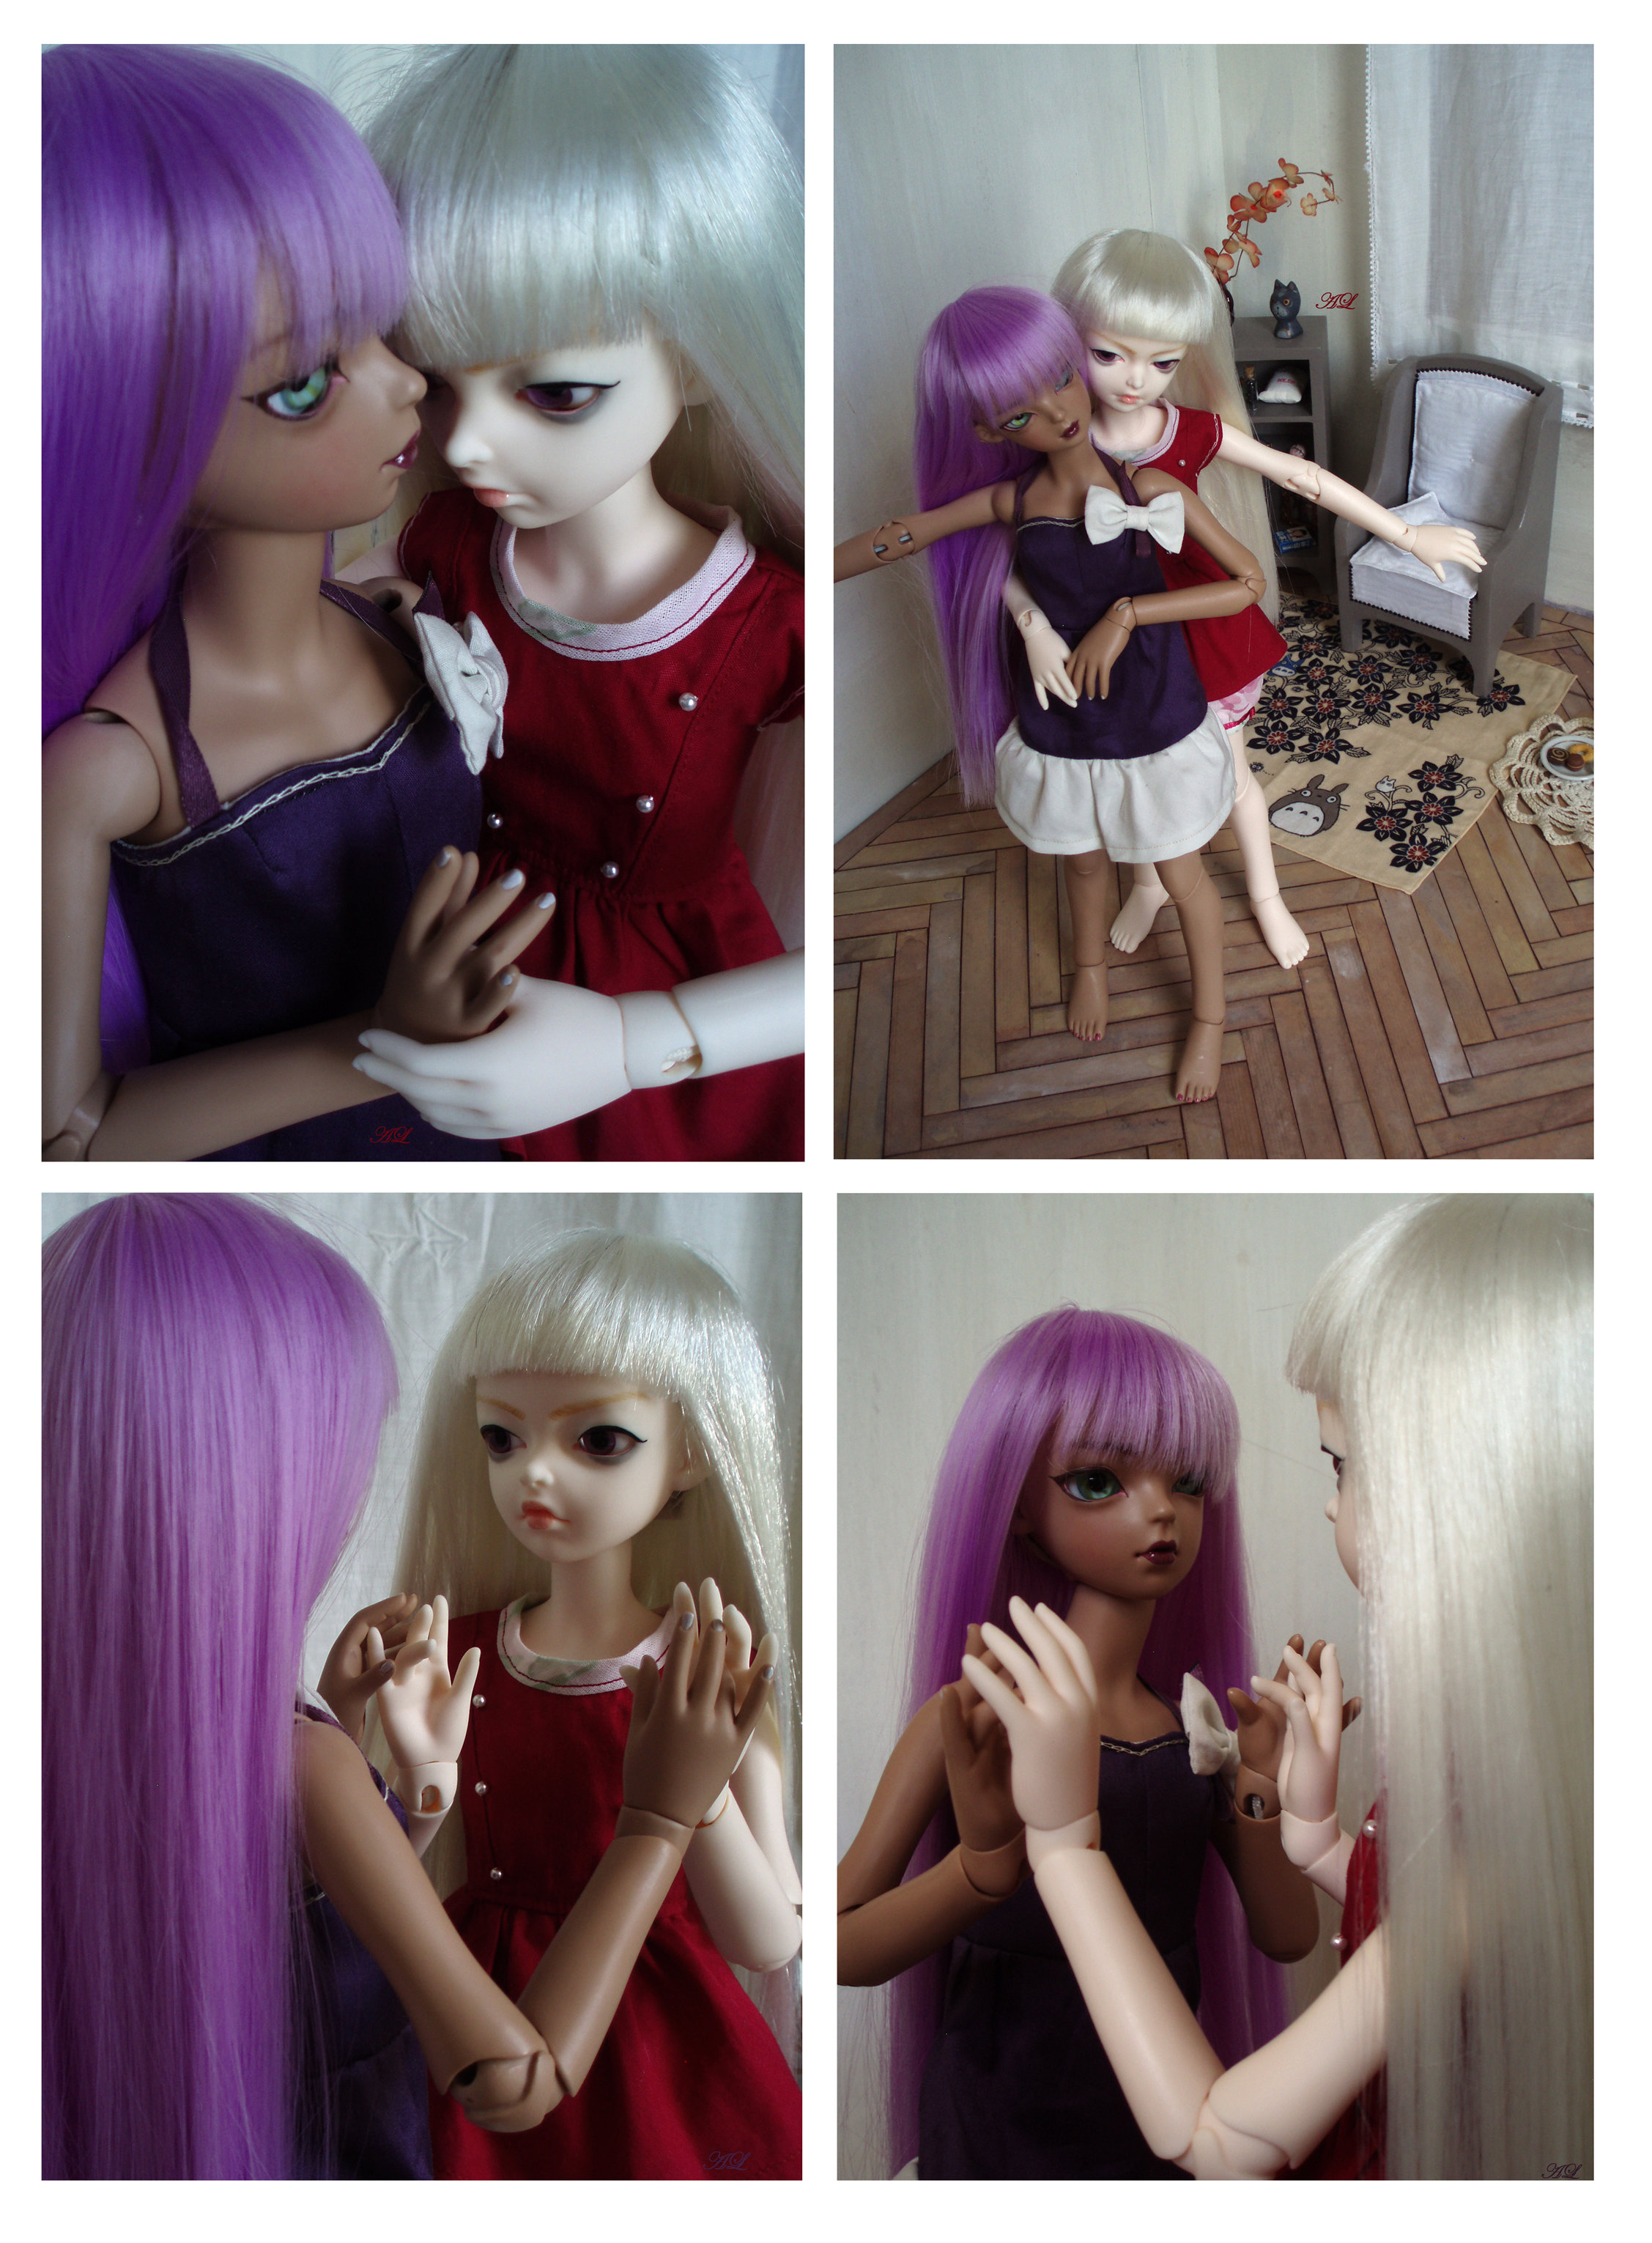 Mes MSD [DMkid Paran tan] Rita New face-up p10 - Page 2 Zw7t